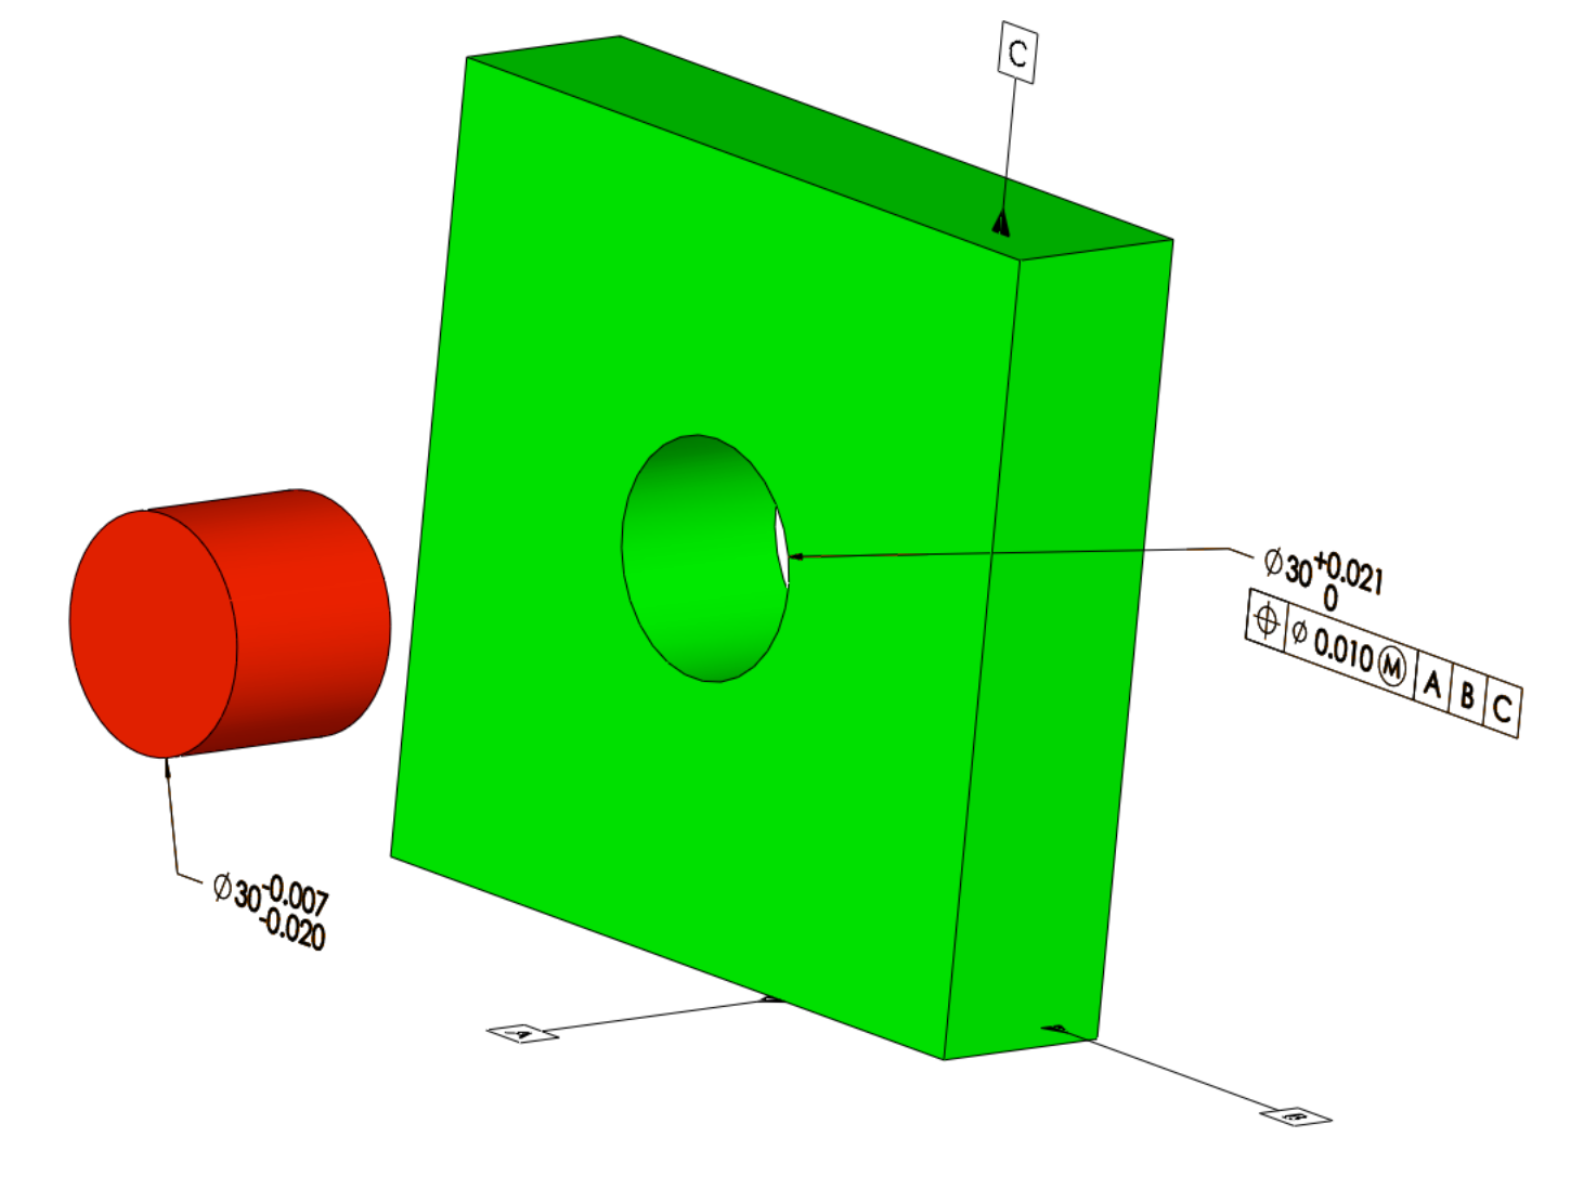 Figure 1. Part with Maximum Material Modifier: As the designed fit is for a looser tolerance fit, the maximum material modifier becomes more appropriate.